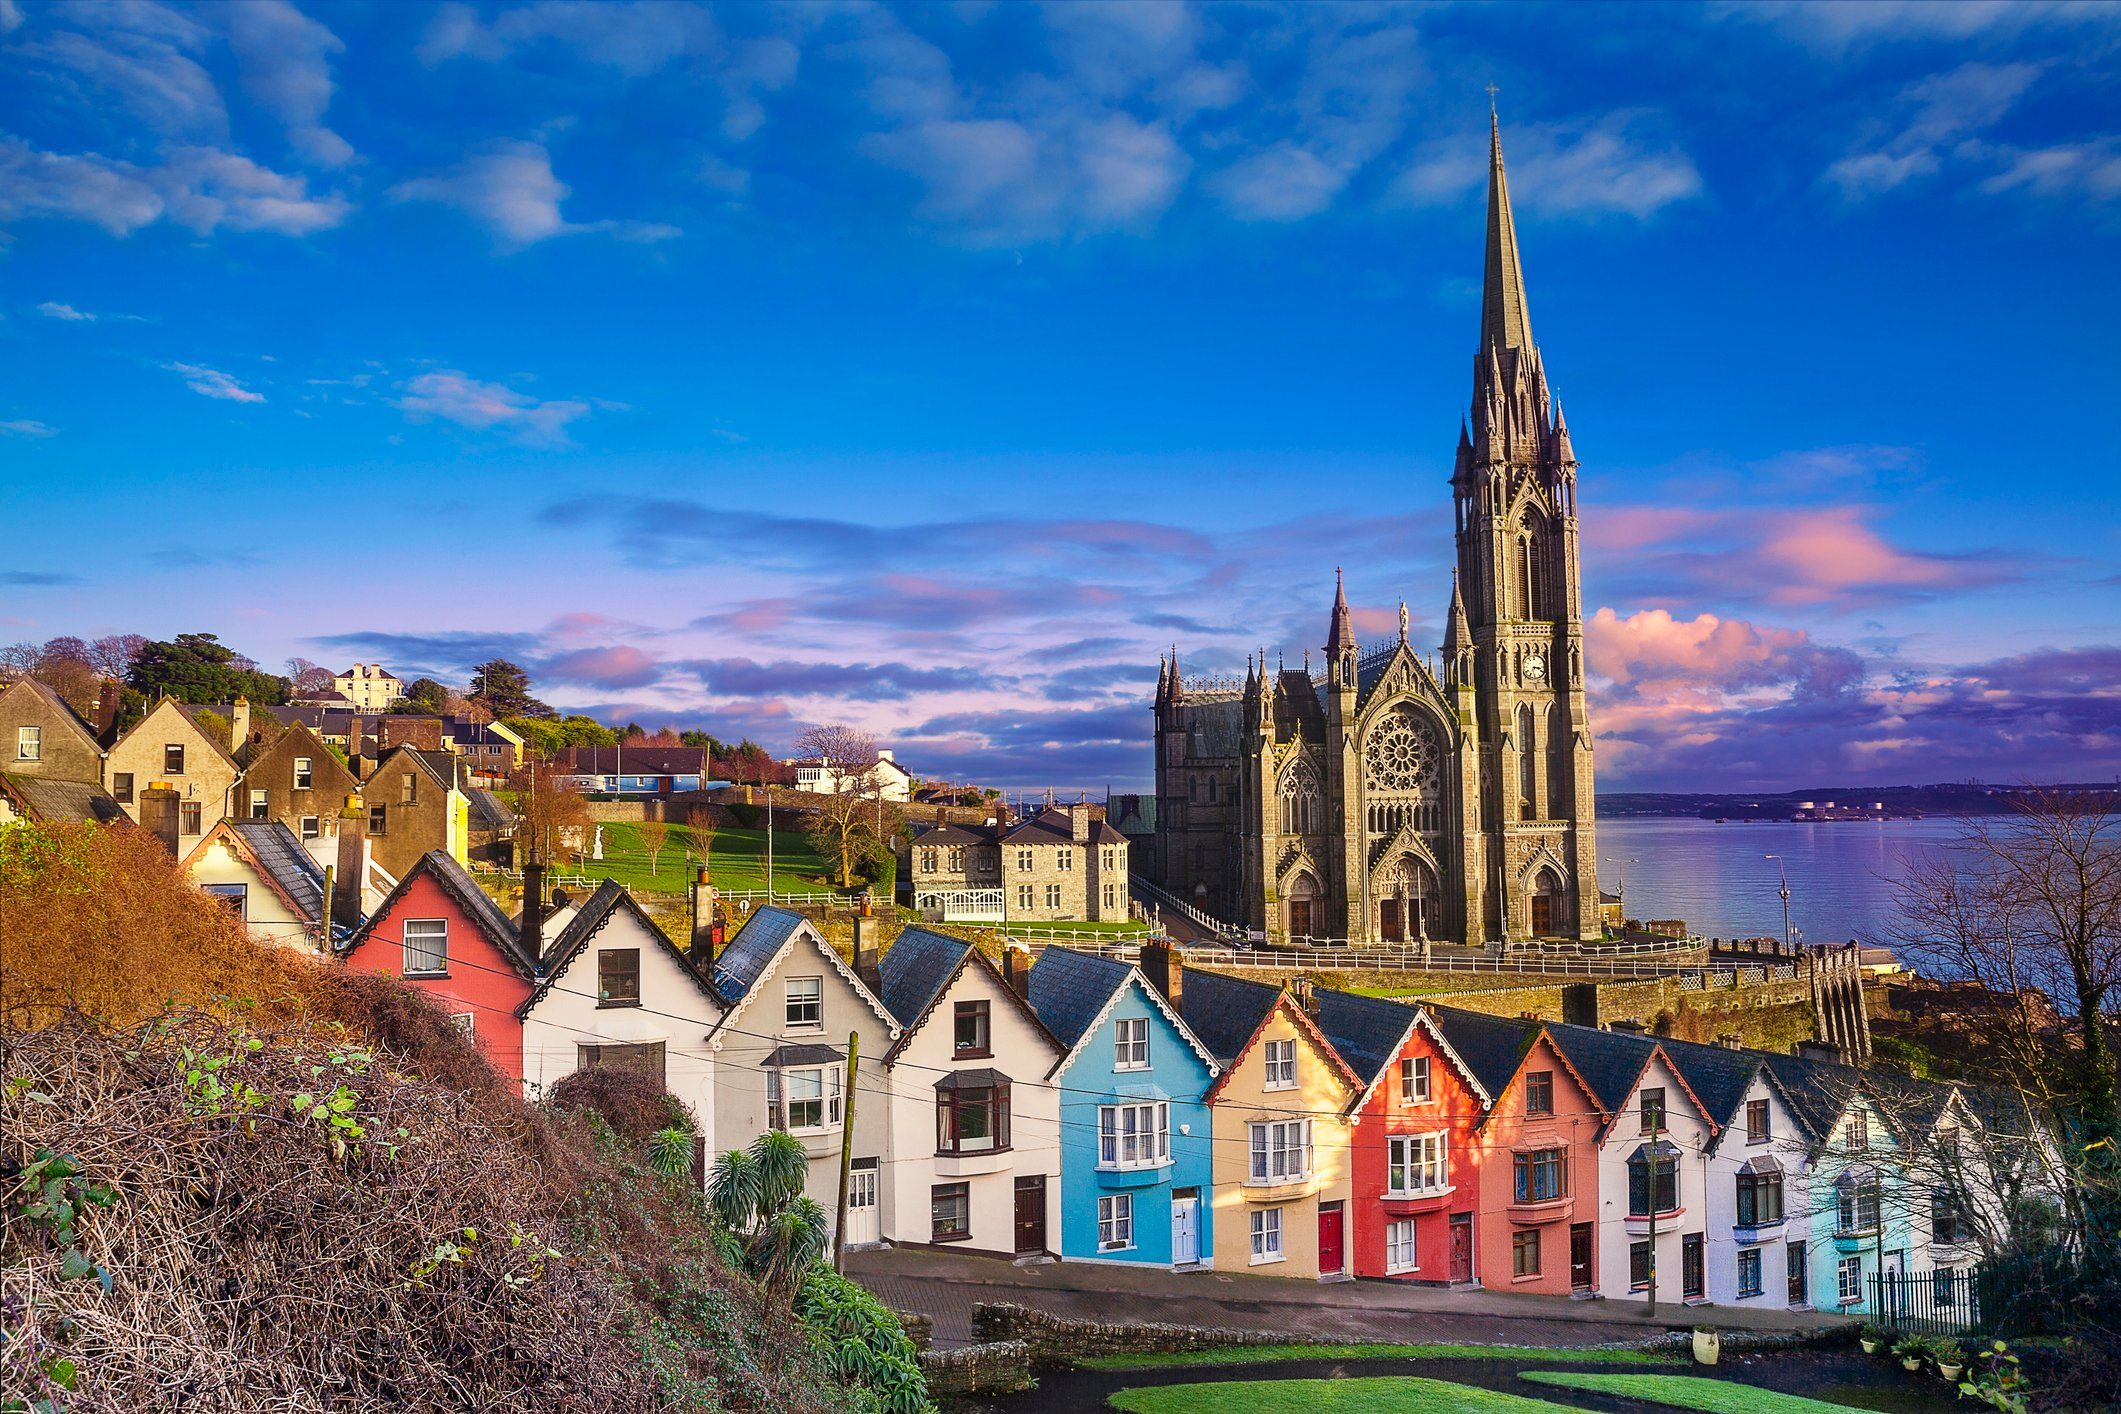 Photo of Cobh, Ireland: iStock from Getty images Credit Ben Stevens: istockphoto.com ID:641736118